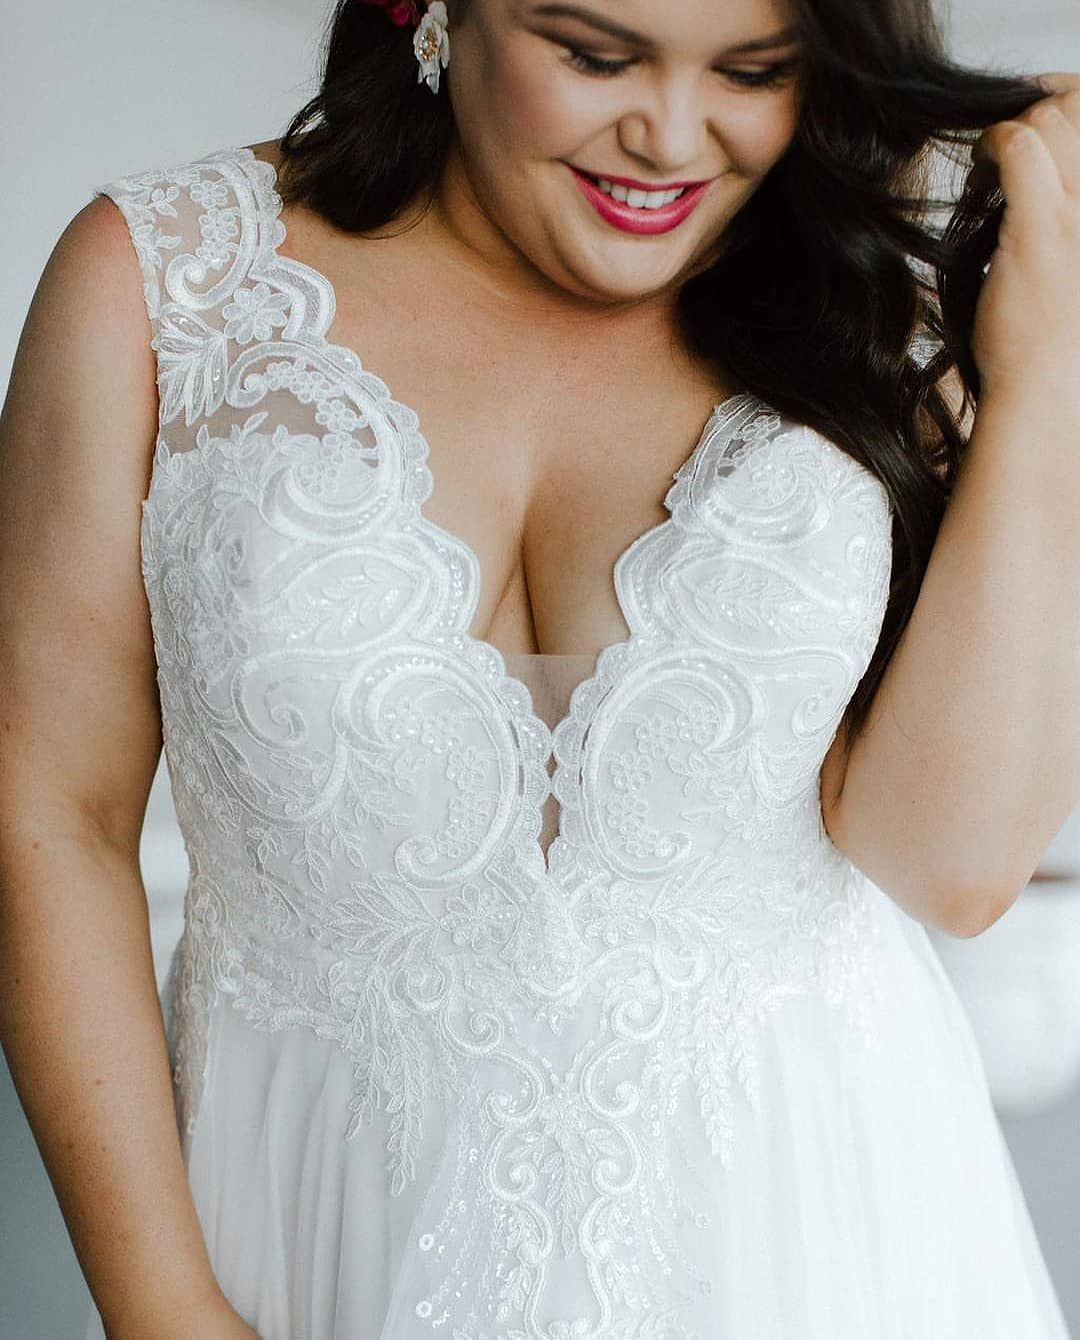 Plus size bride smiling and wearing beautiful flattering